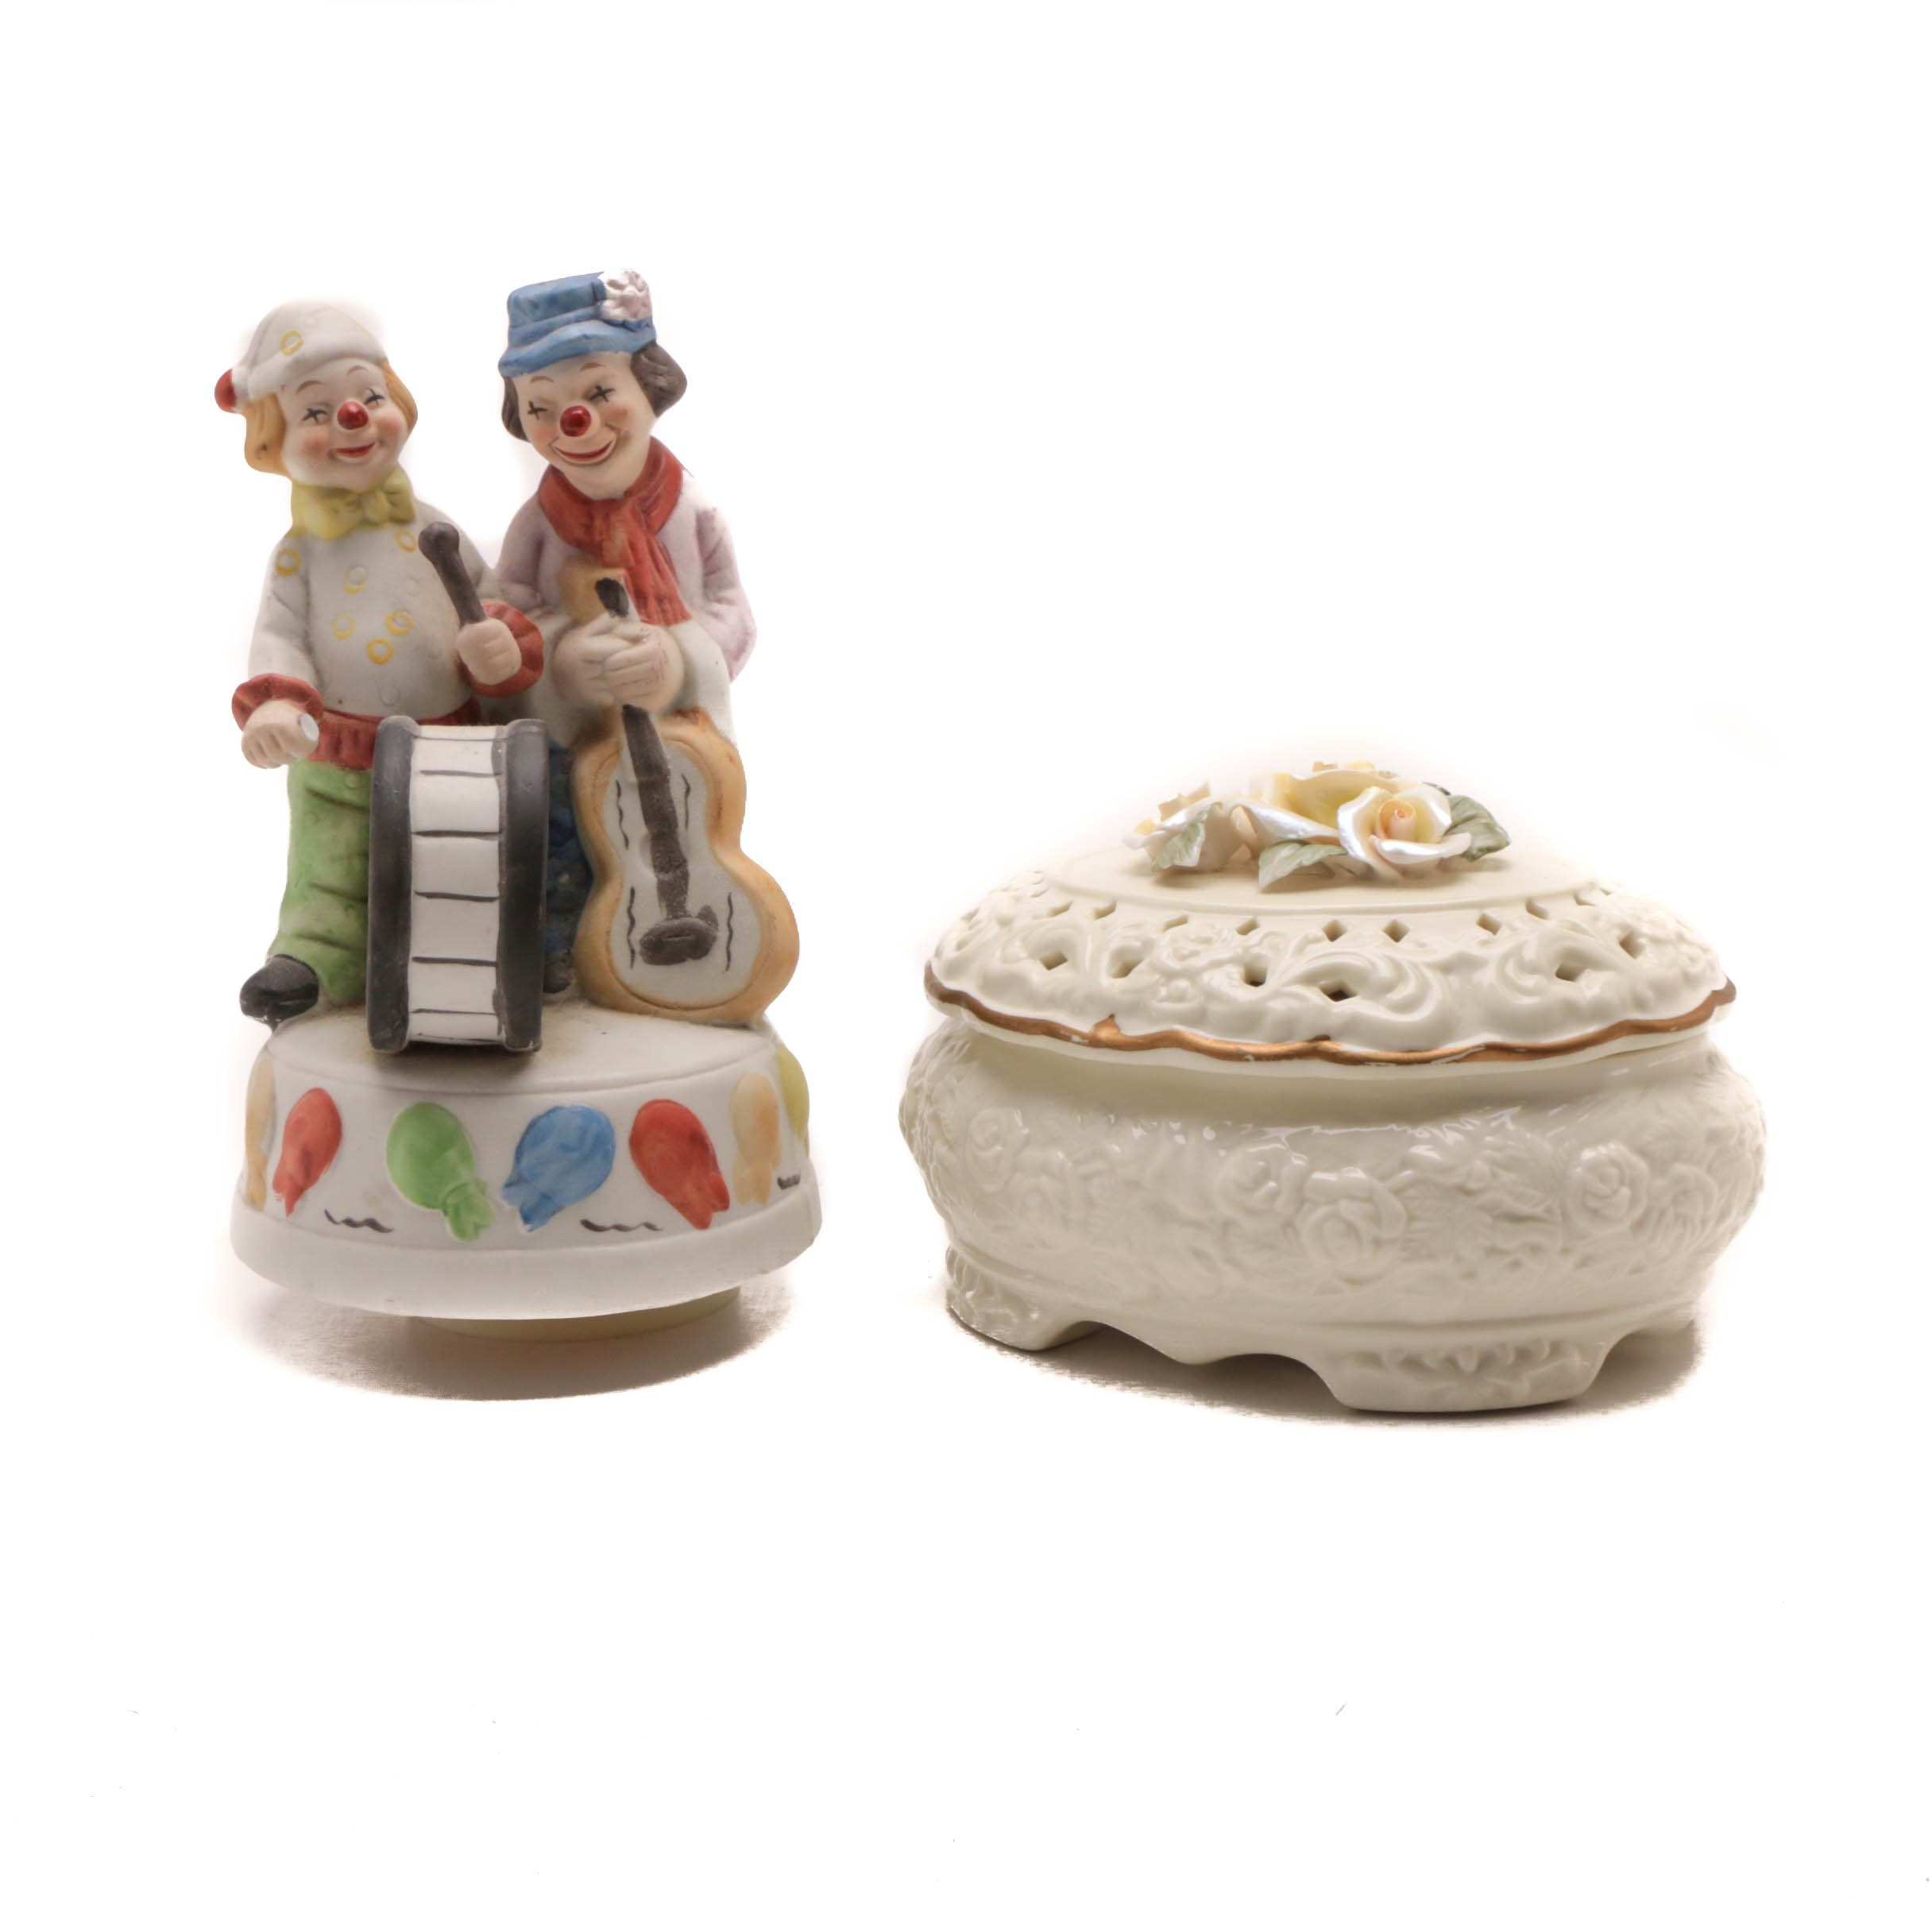 Bisque Clown Musical Figurine and More